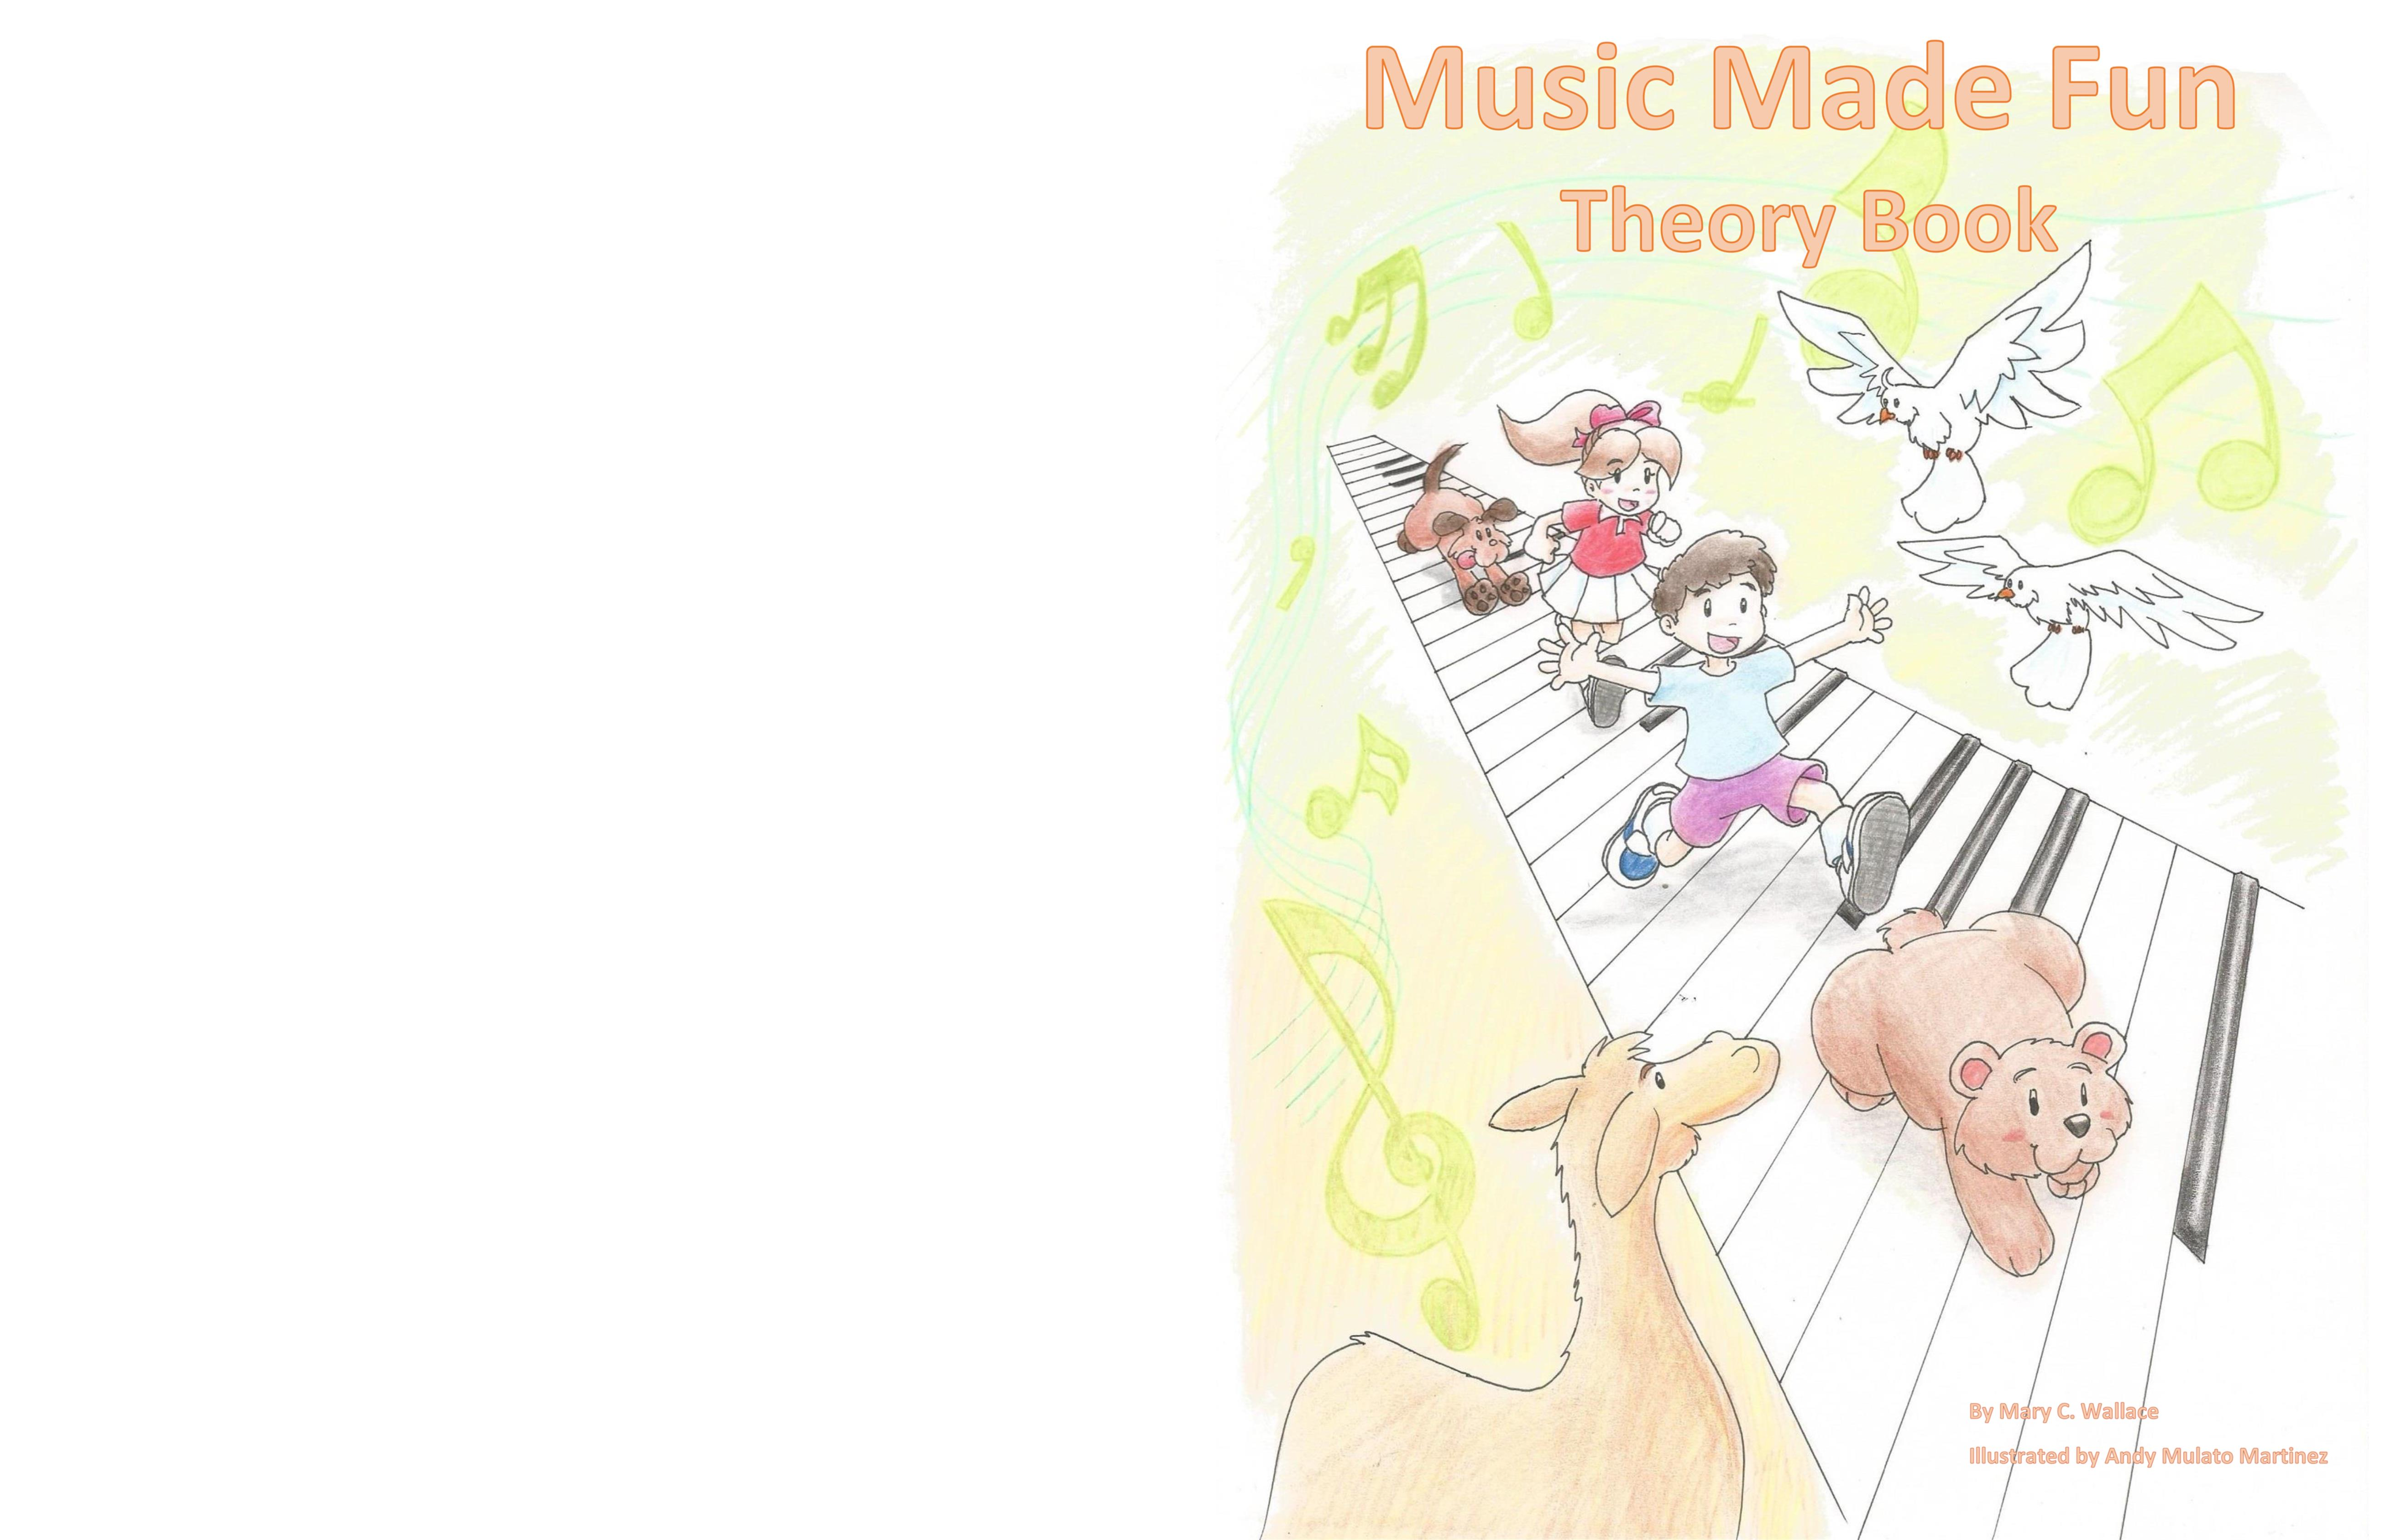 Music Made Fun Theory Book cover image